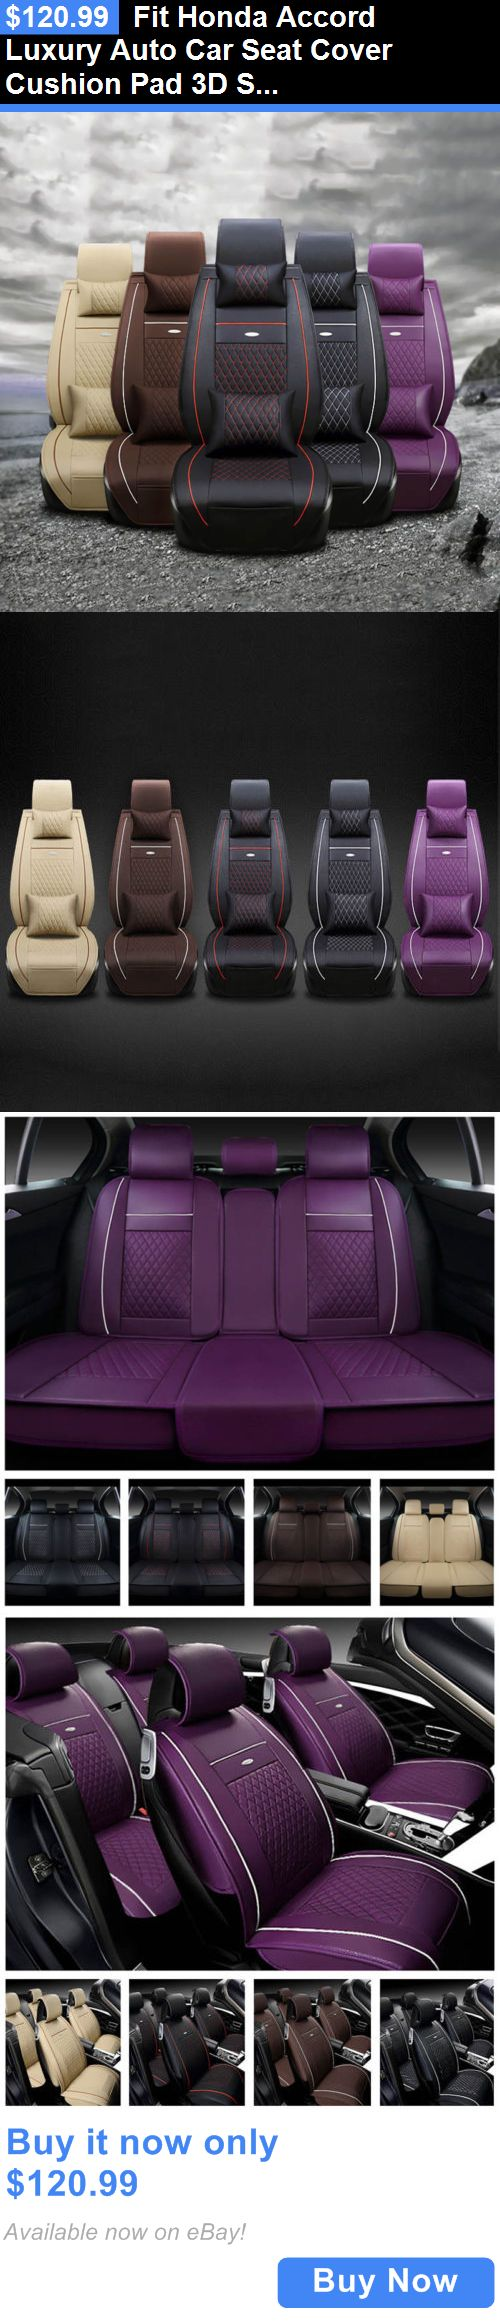 Luxury Cars: Fit Honda Accord Luxury Auto Car Seat Cover Cushion Pad 3D Surrounded Pu Leather BUY IT NOW ONLY: $120.99